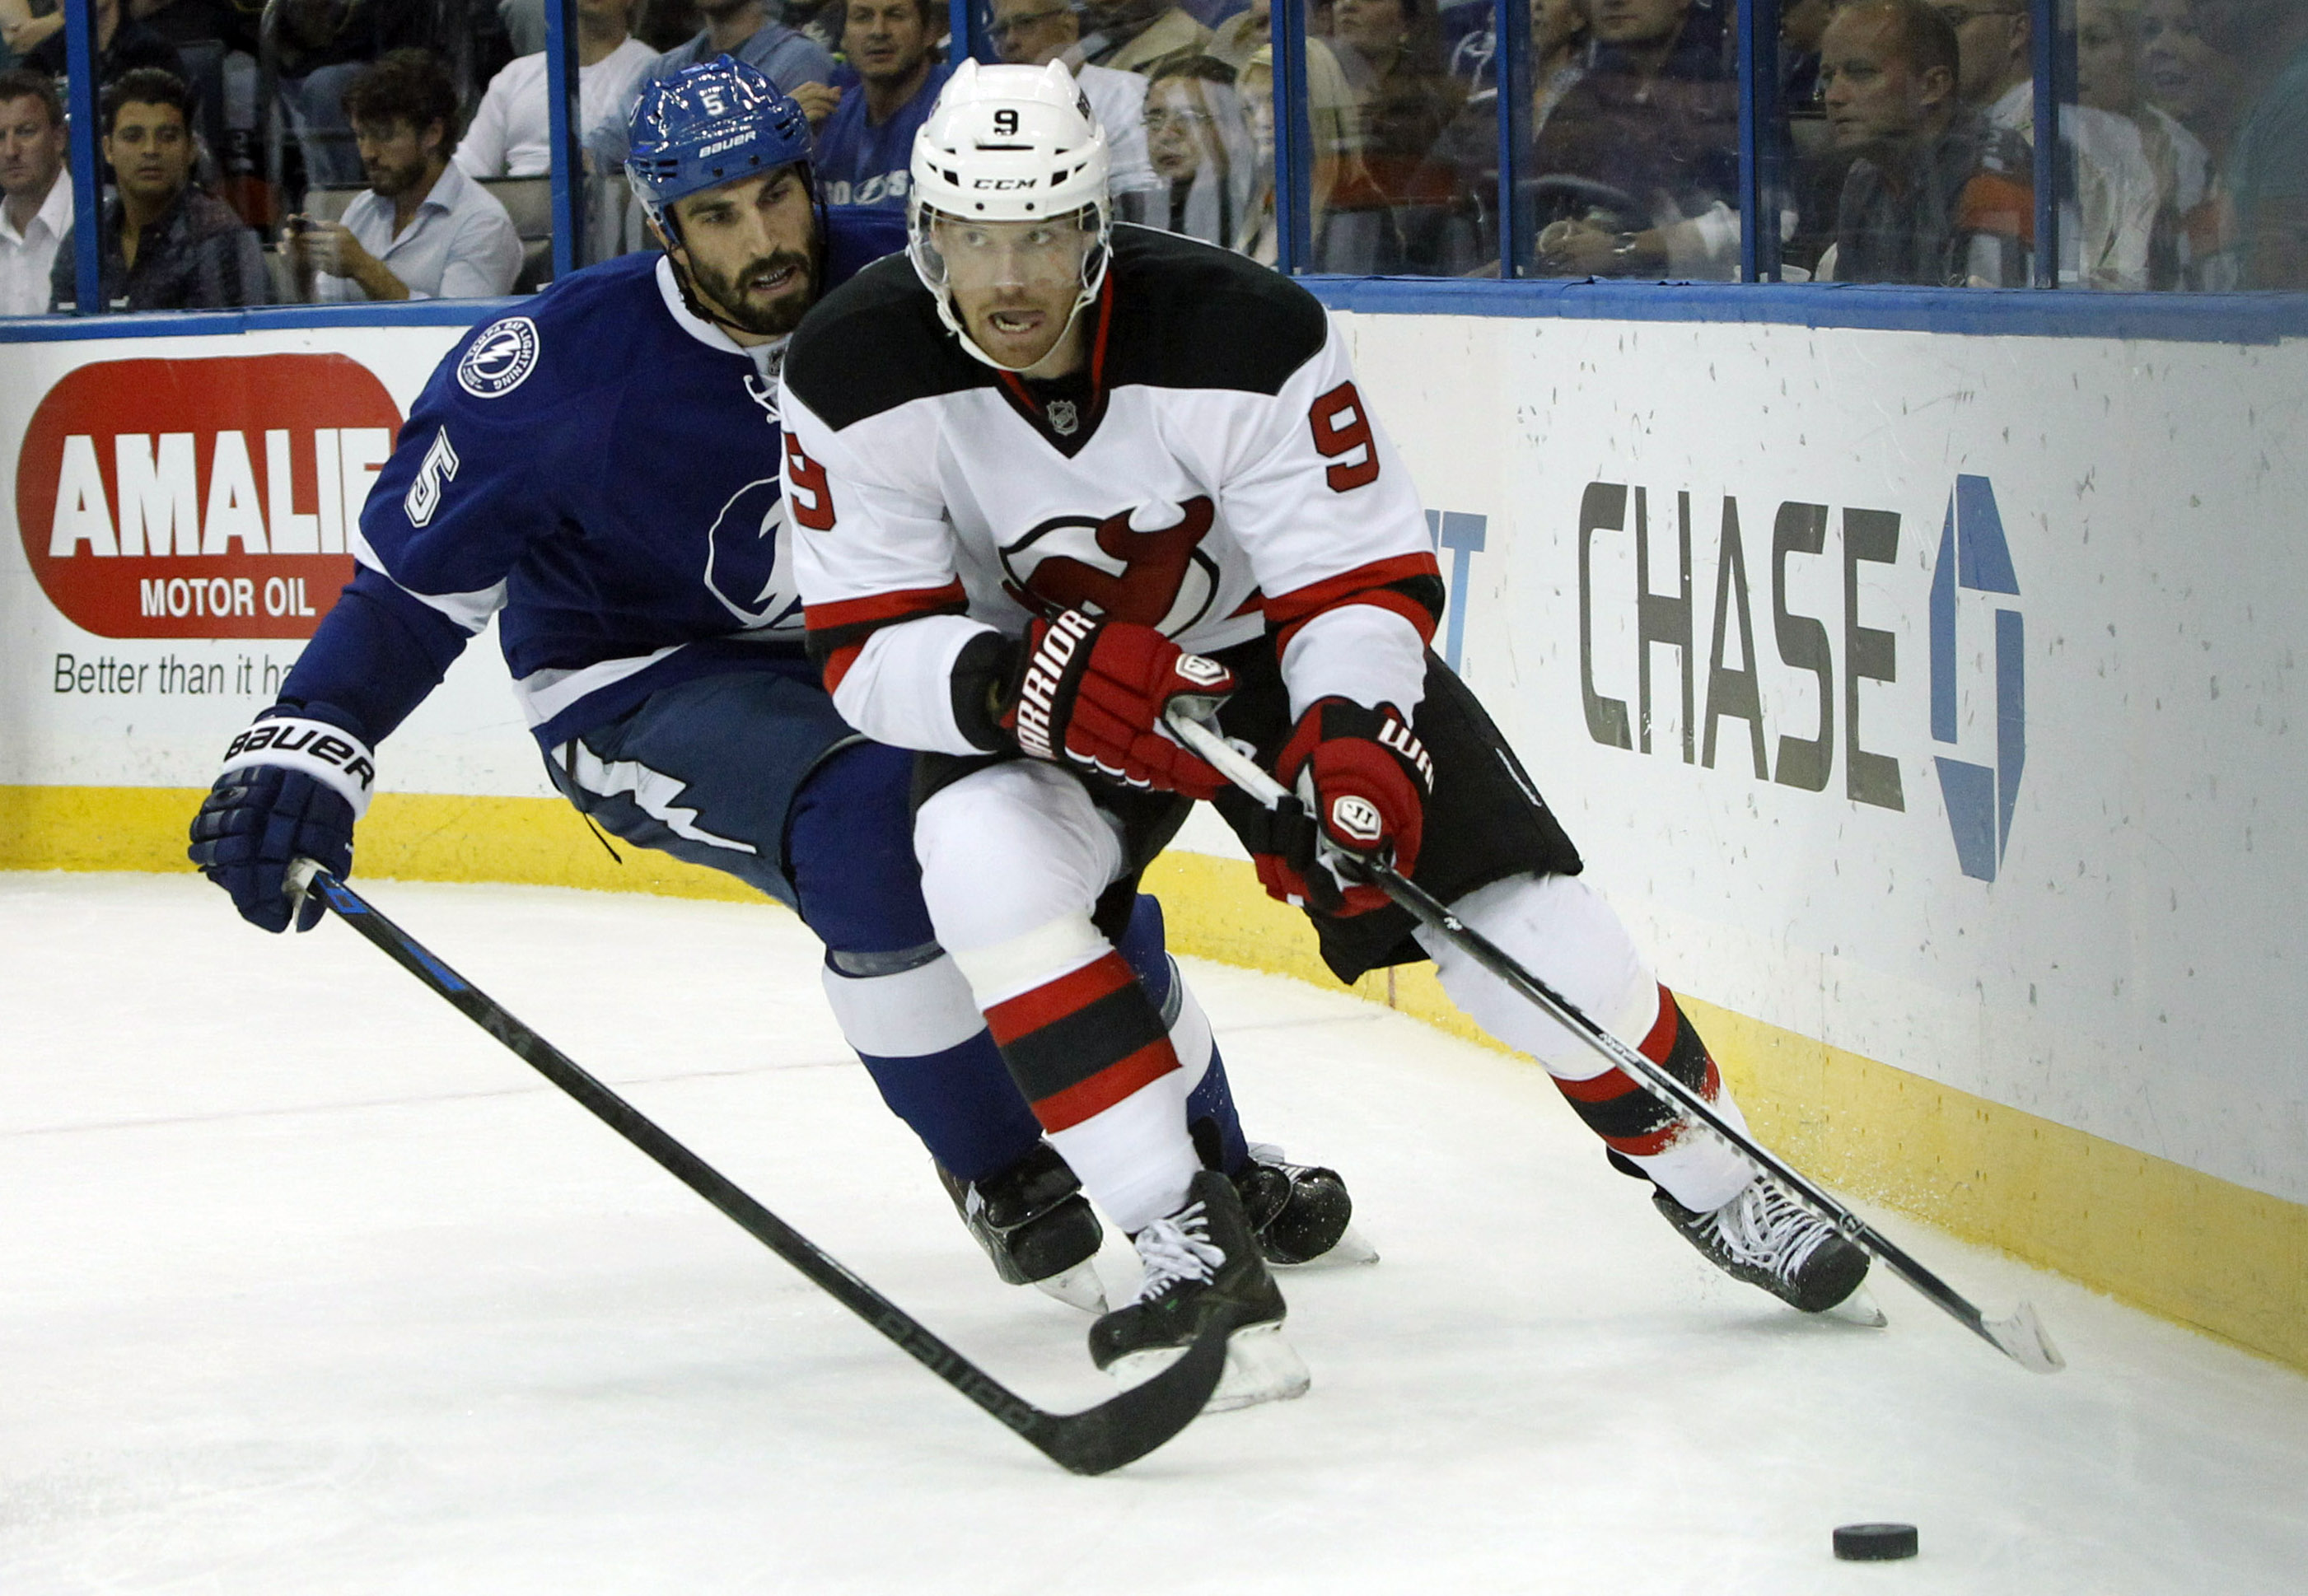 8142213-nhl-new-jersey-devils-at-tampa-bay-lightning